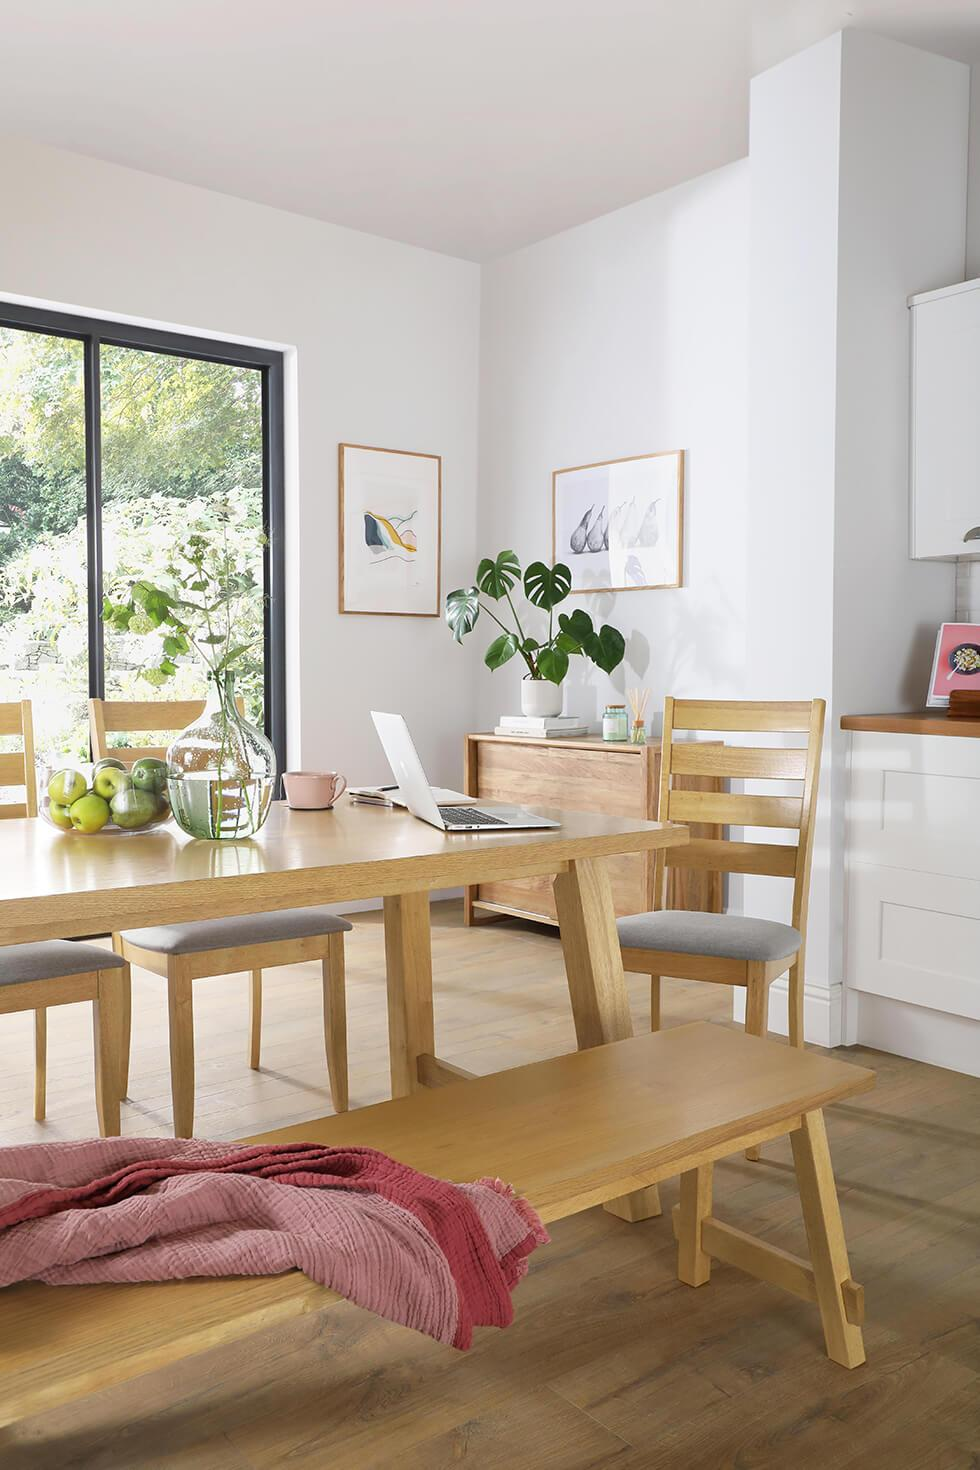 oak dining table and bench with grey fabric chairs in a contemporary open pan space